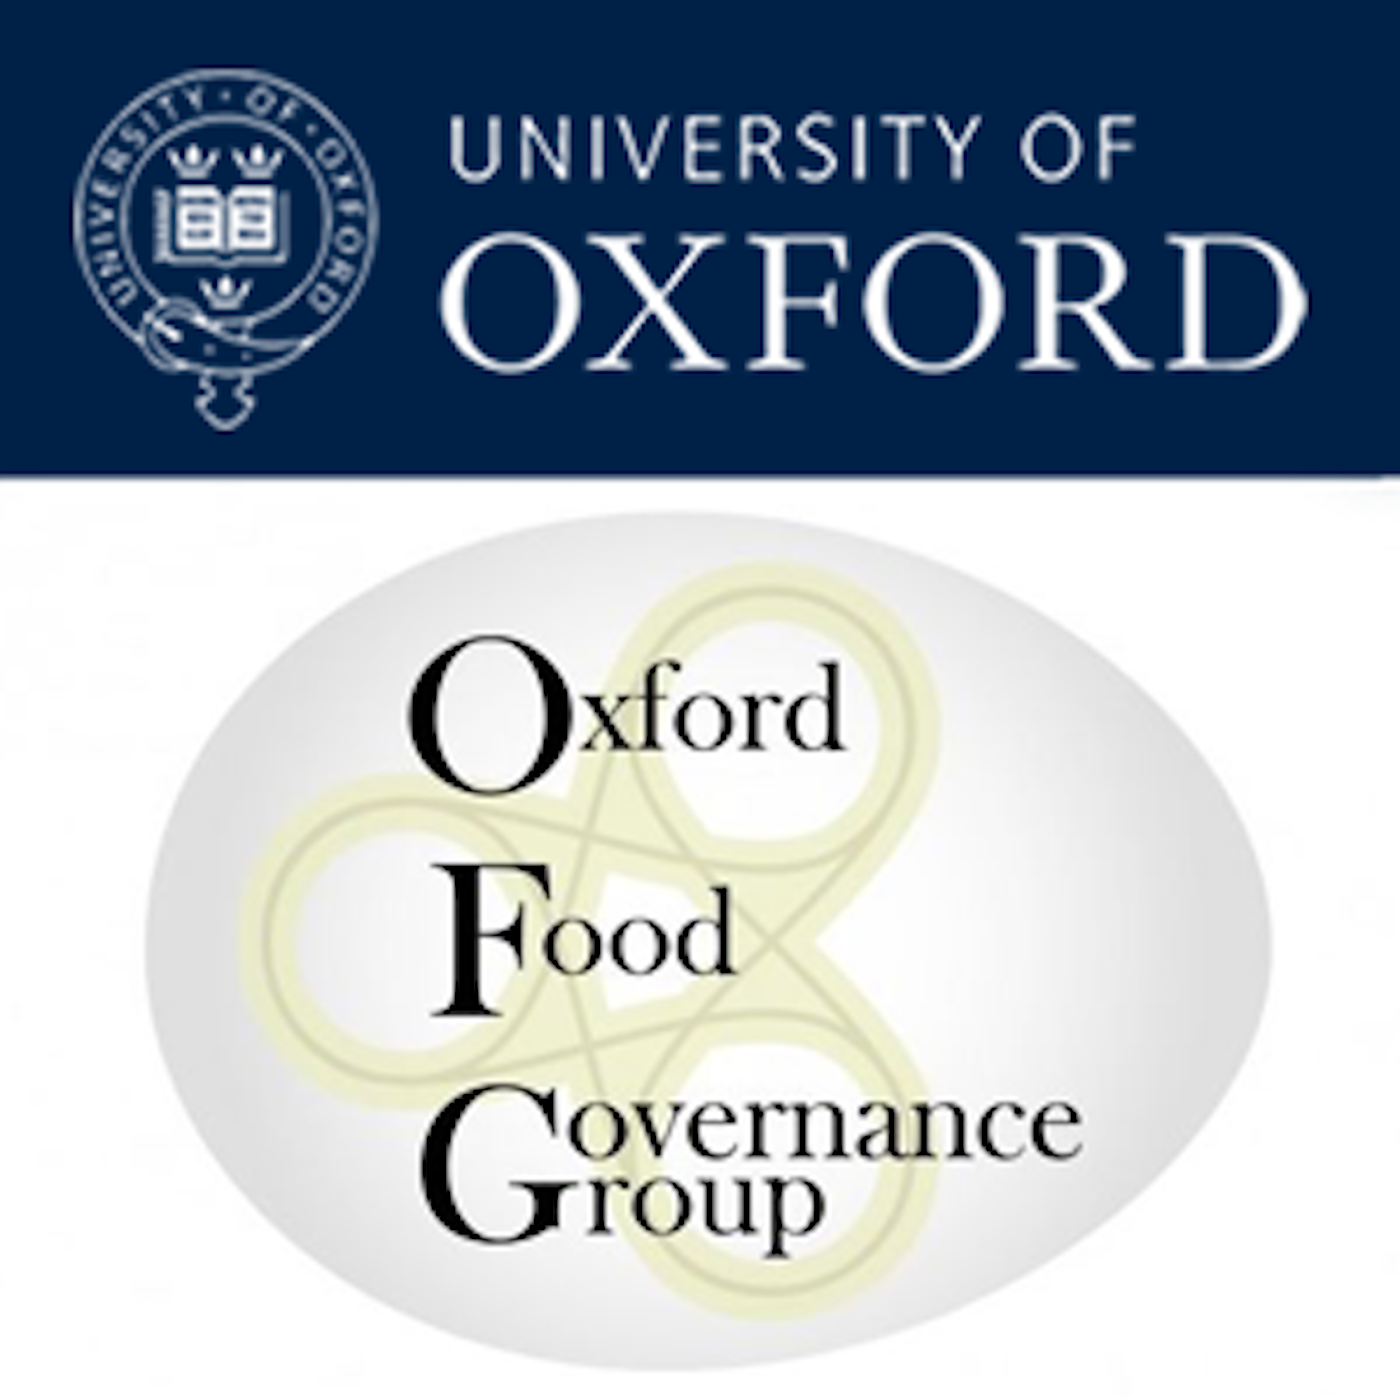 Experiments in sociological food governance